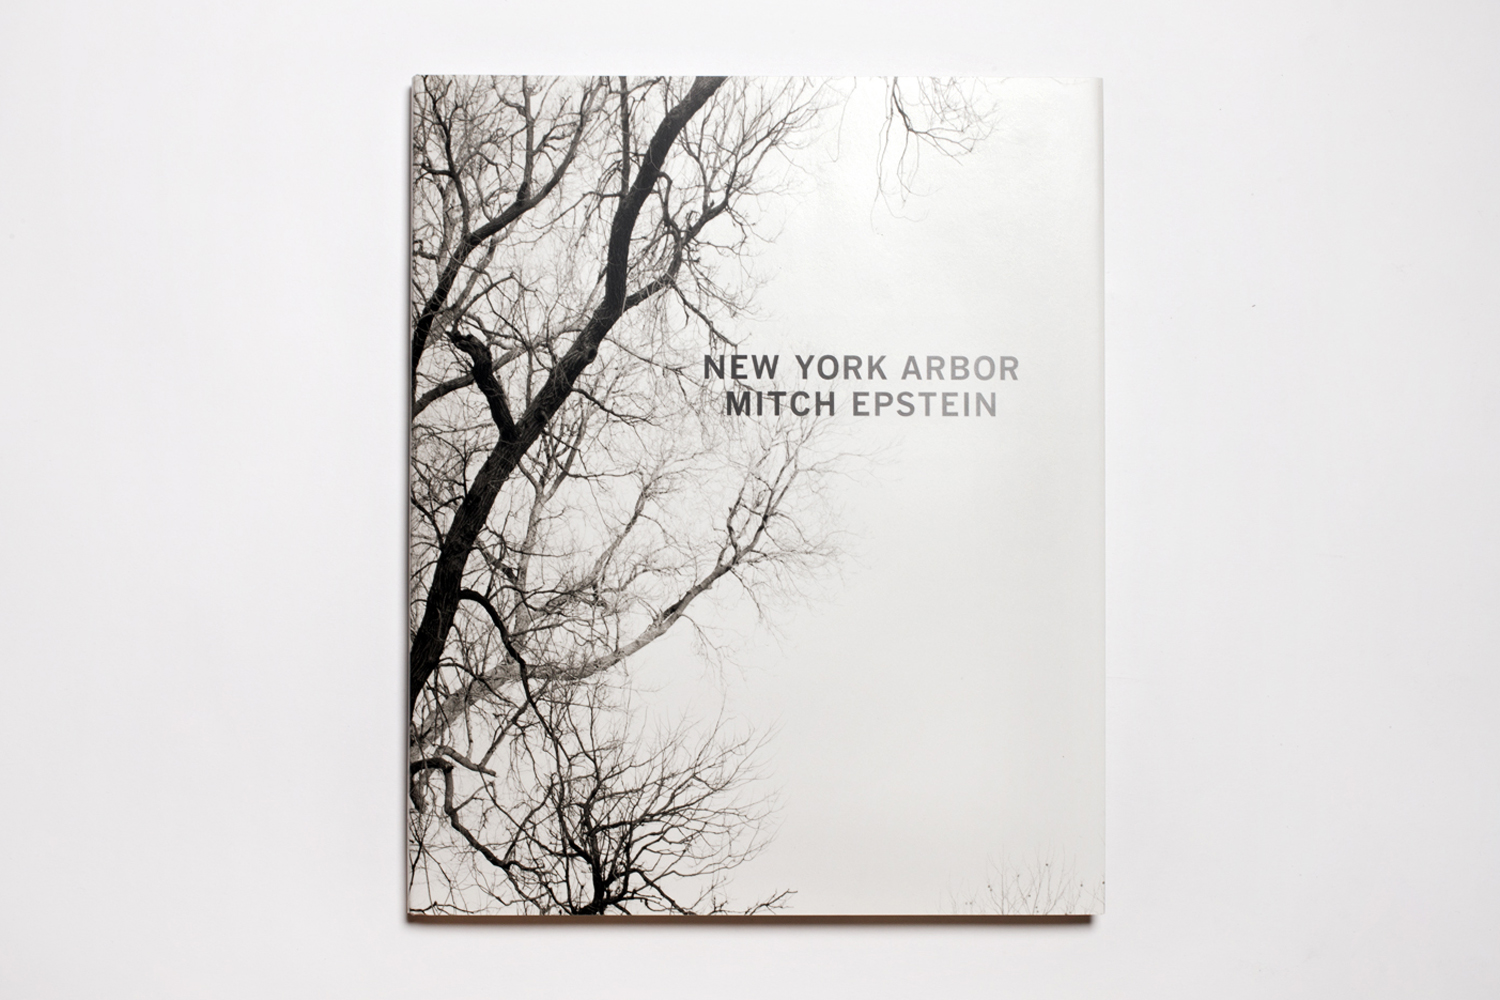 New York Arbor by Mitch Epstein, published by Steidl, selected by Phillip Block, deputy director of programs and director of education, International Center of Photography.